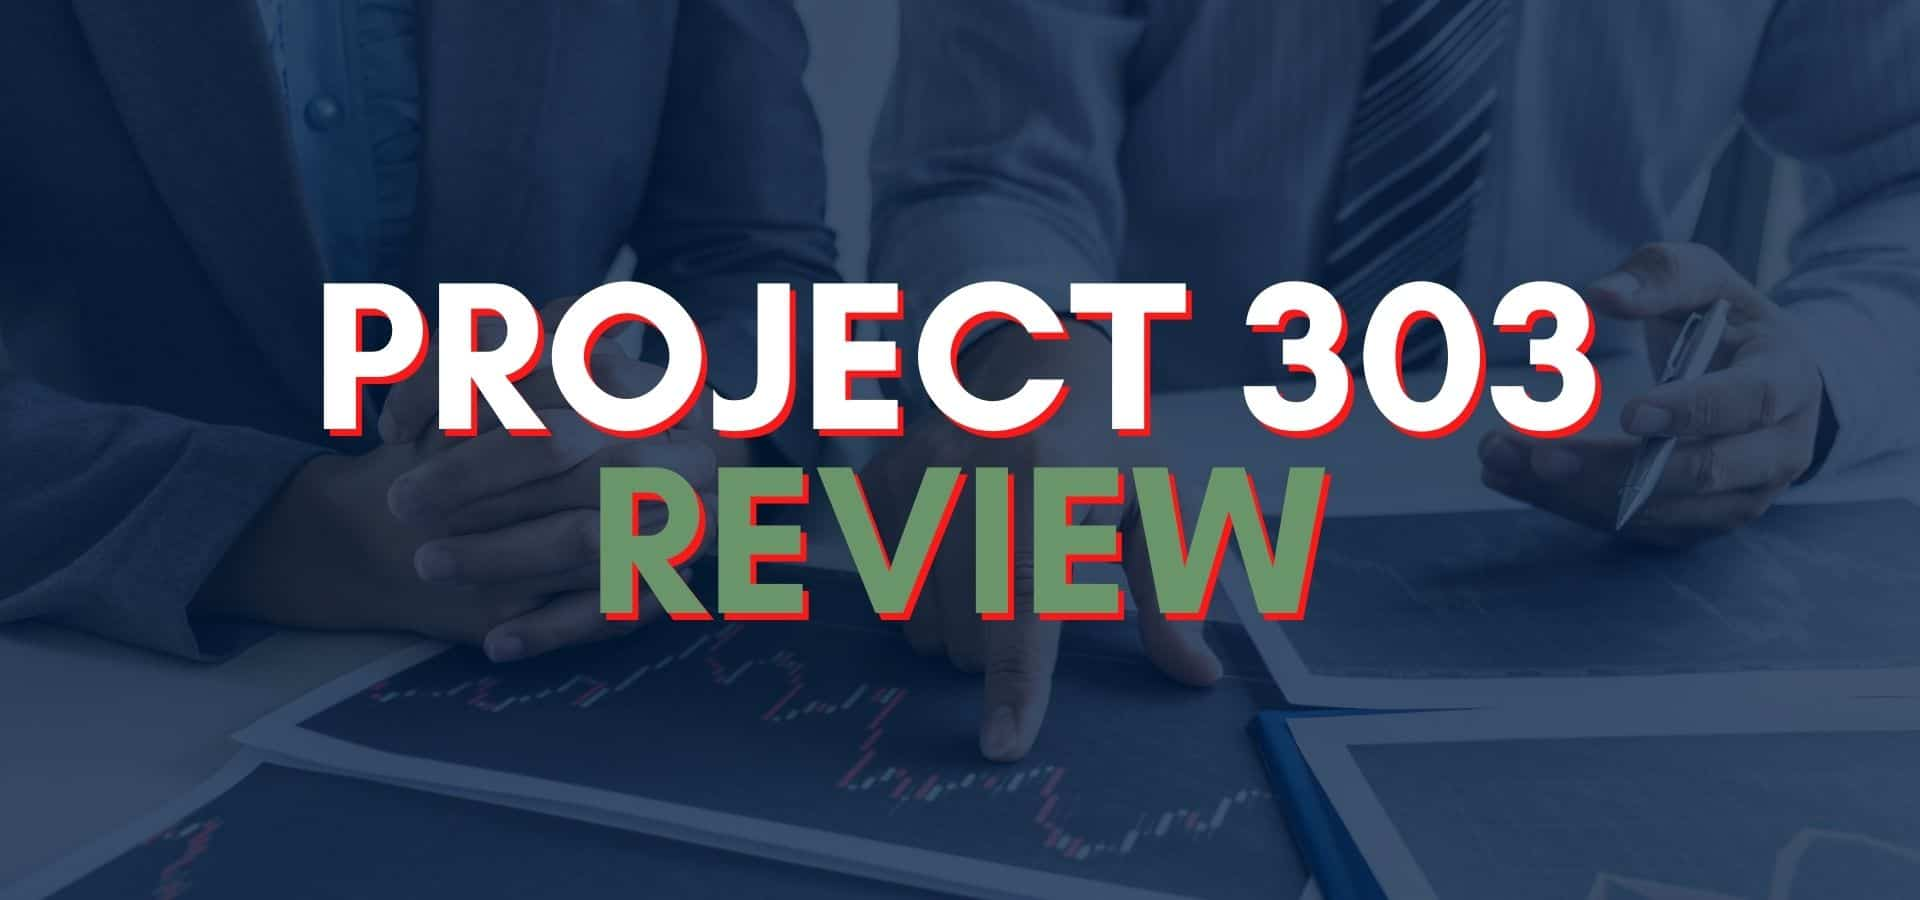 Project 303 Review: Is The Extra Income Project Legit?